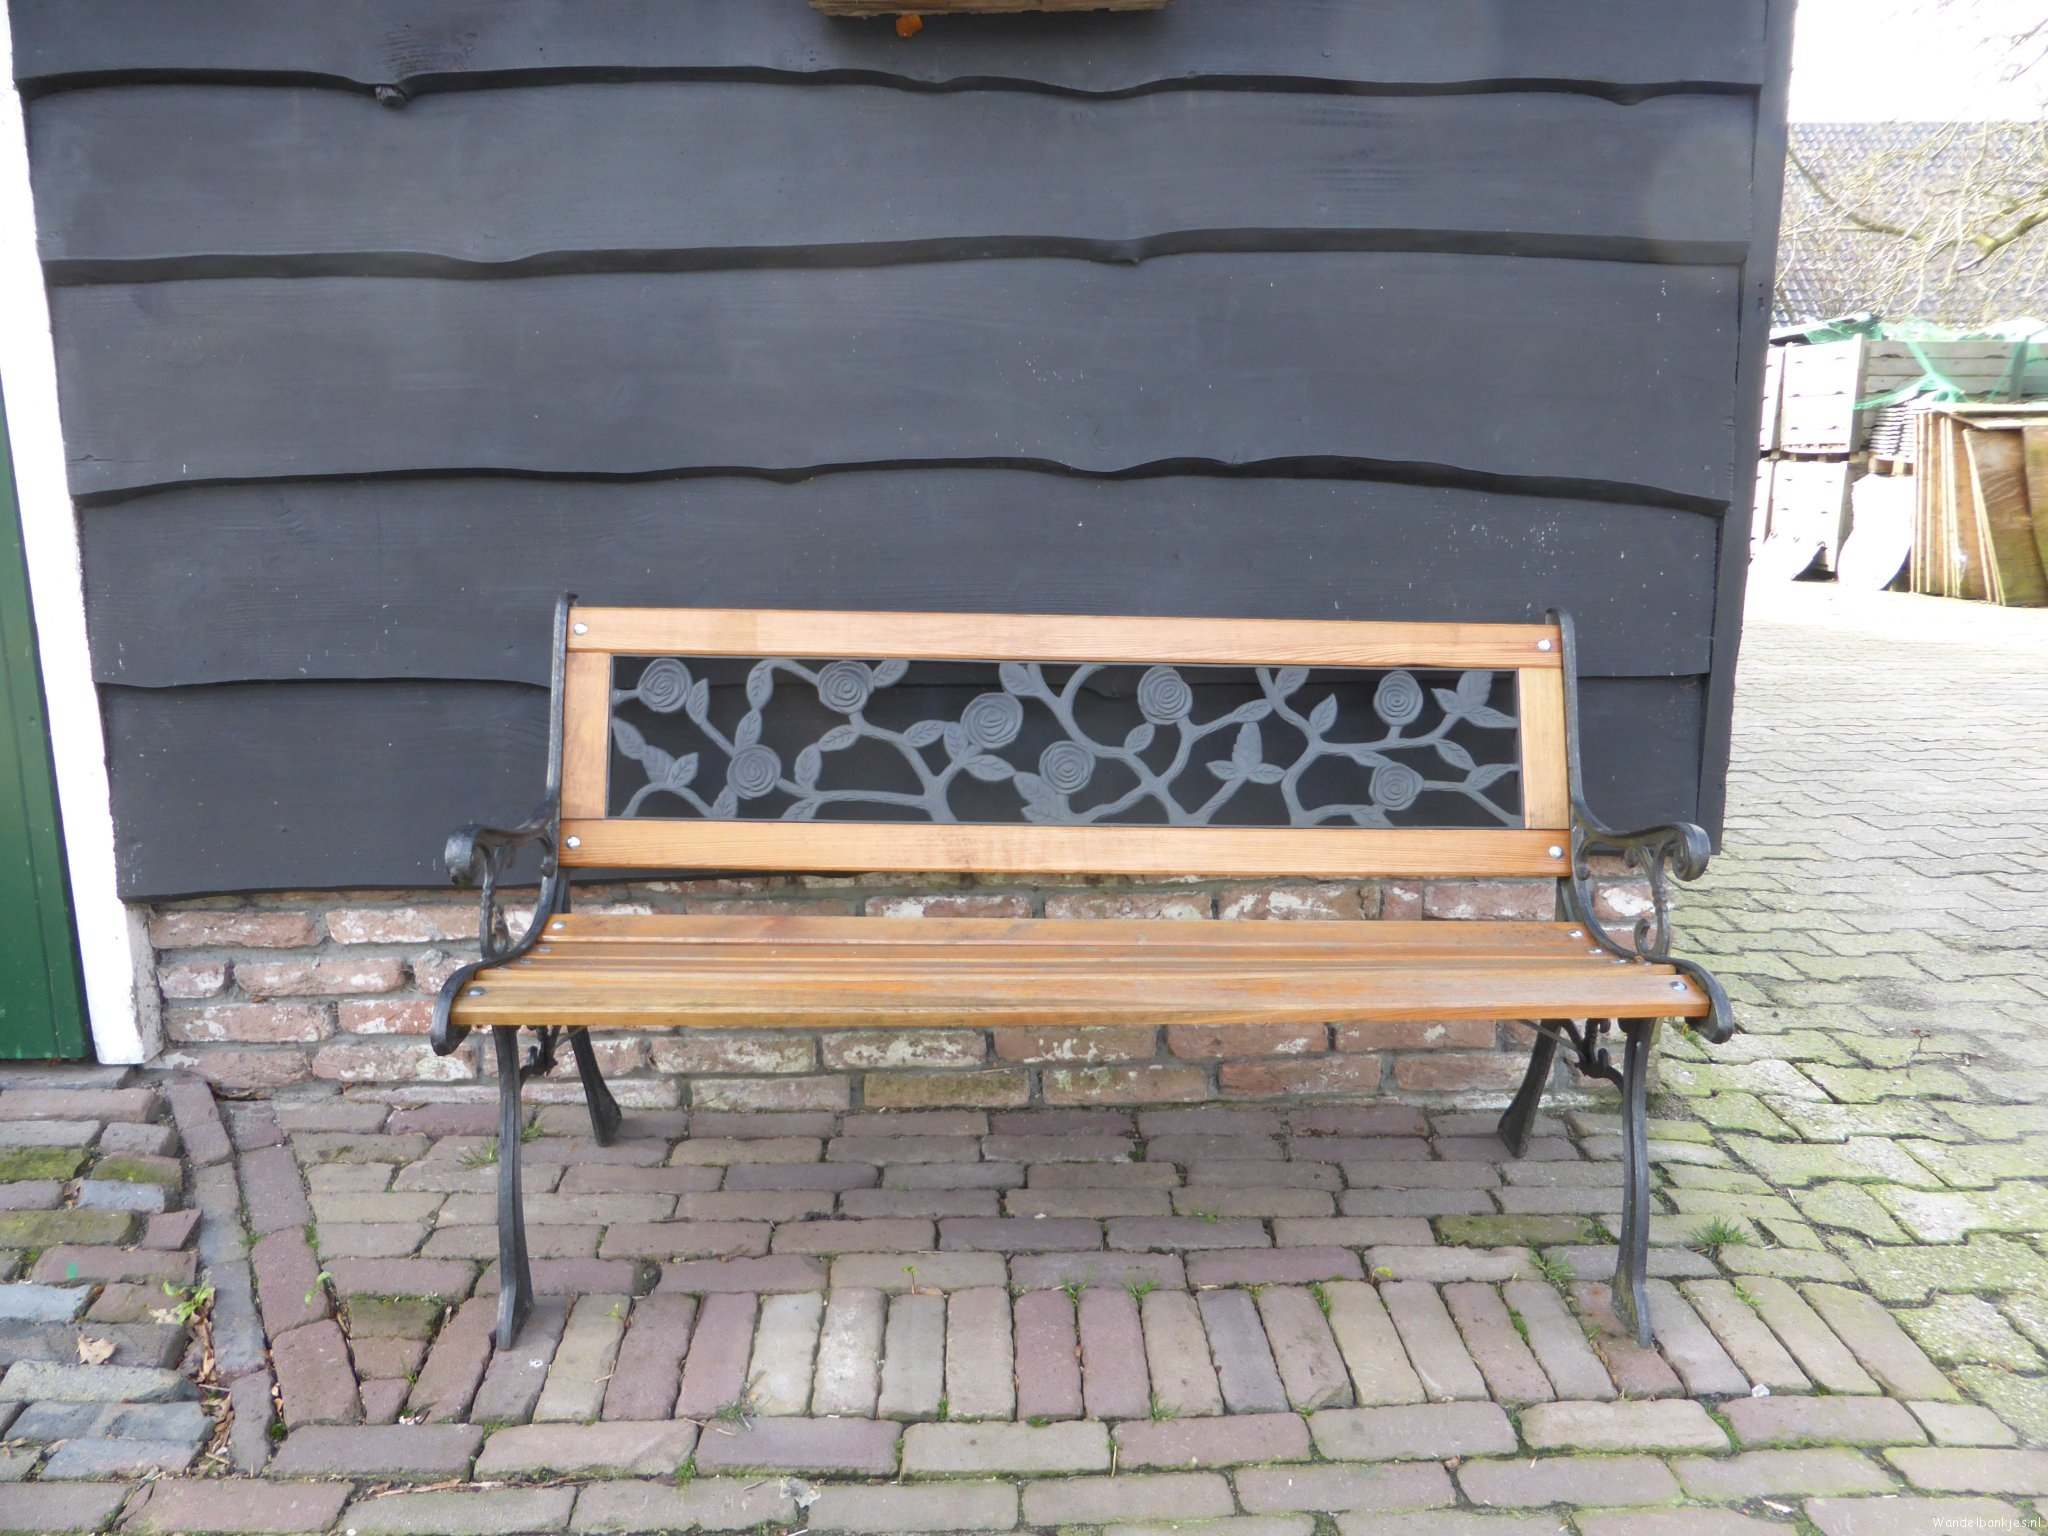 rt-willemwandelt-hiking-walking benches-westborkpad-walking benches-staphorst-farm-pottery-building-clinker-httpst-comyqg9y